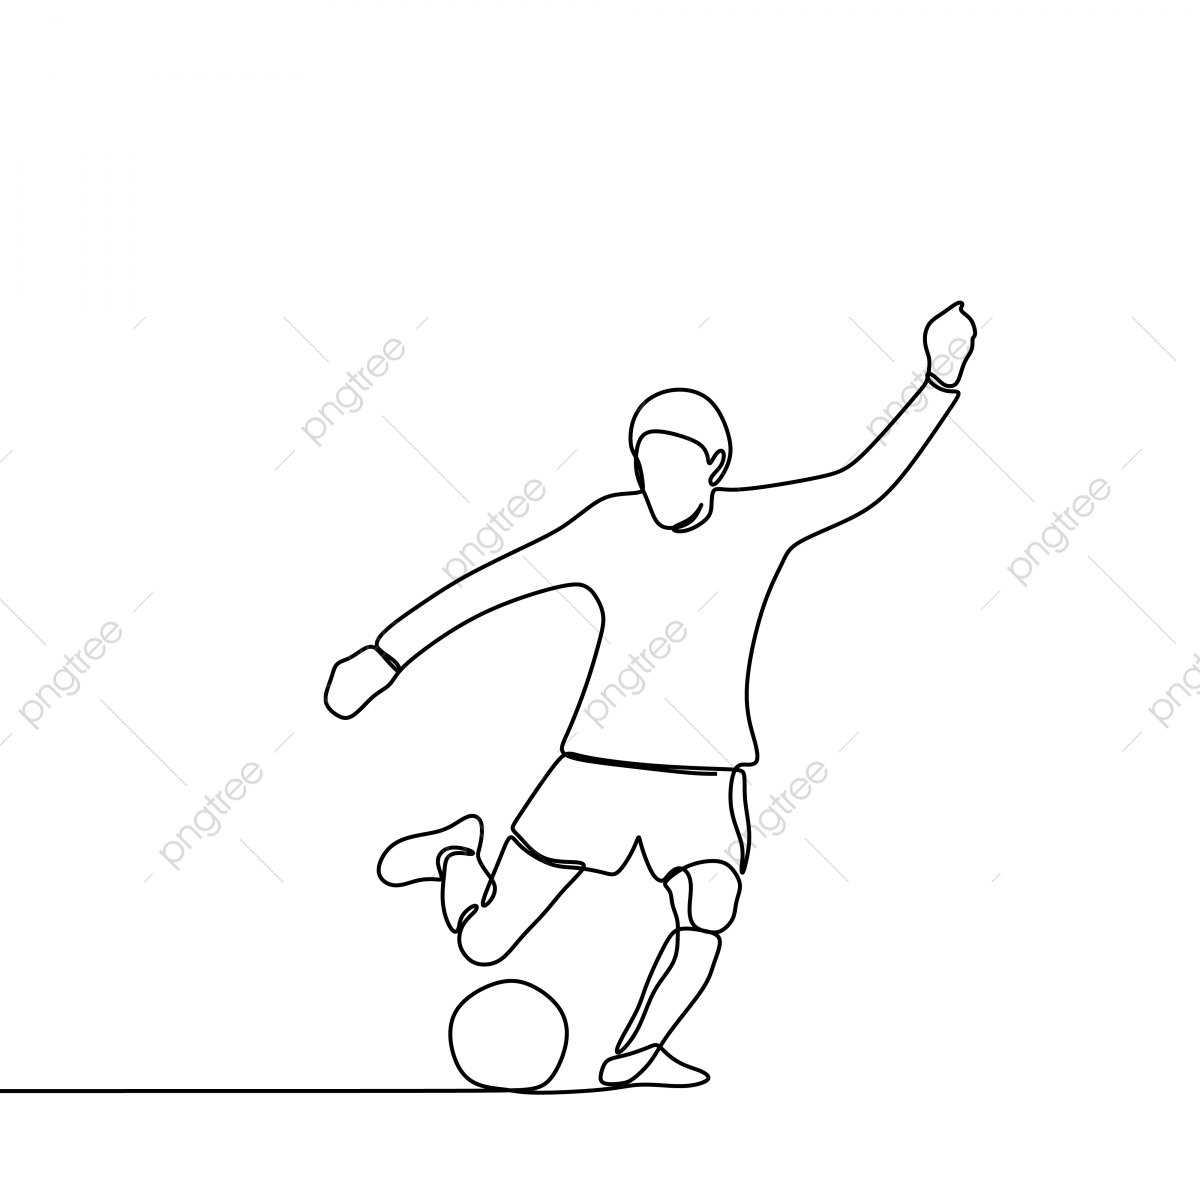 Trendy Person Kick A Ball Football Player Continuous Line Drawing Kick Defense Foot Png And Vector With Transparent Background For Free Download